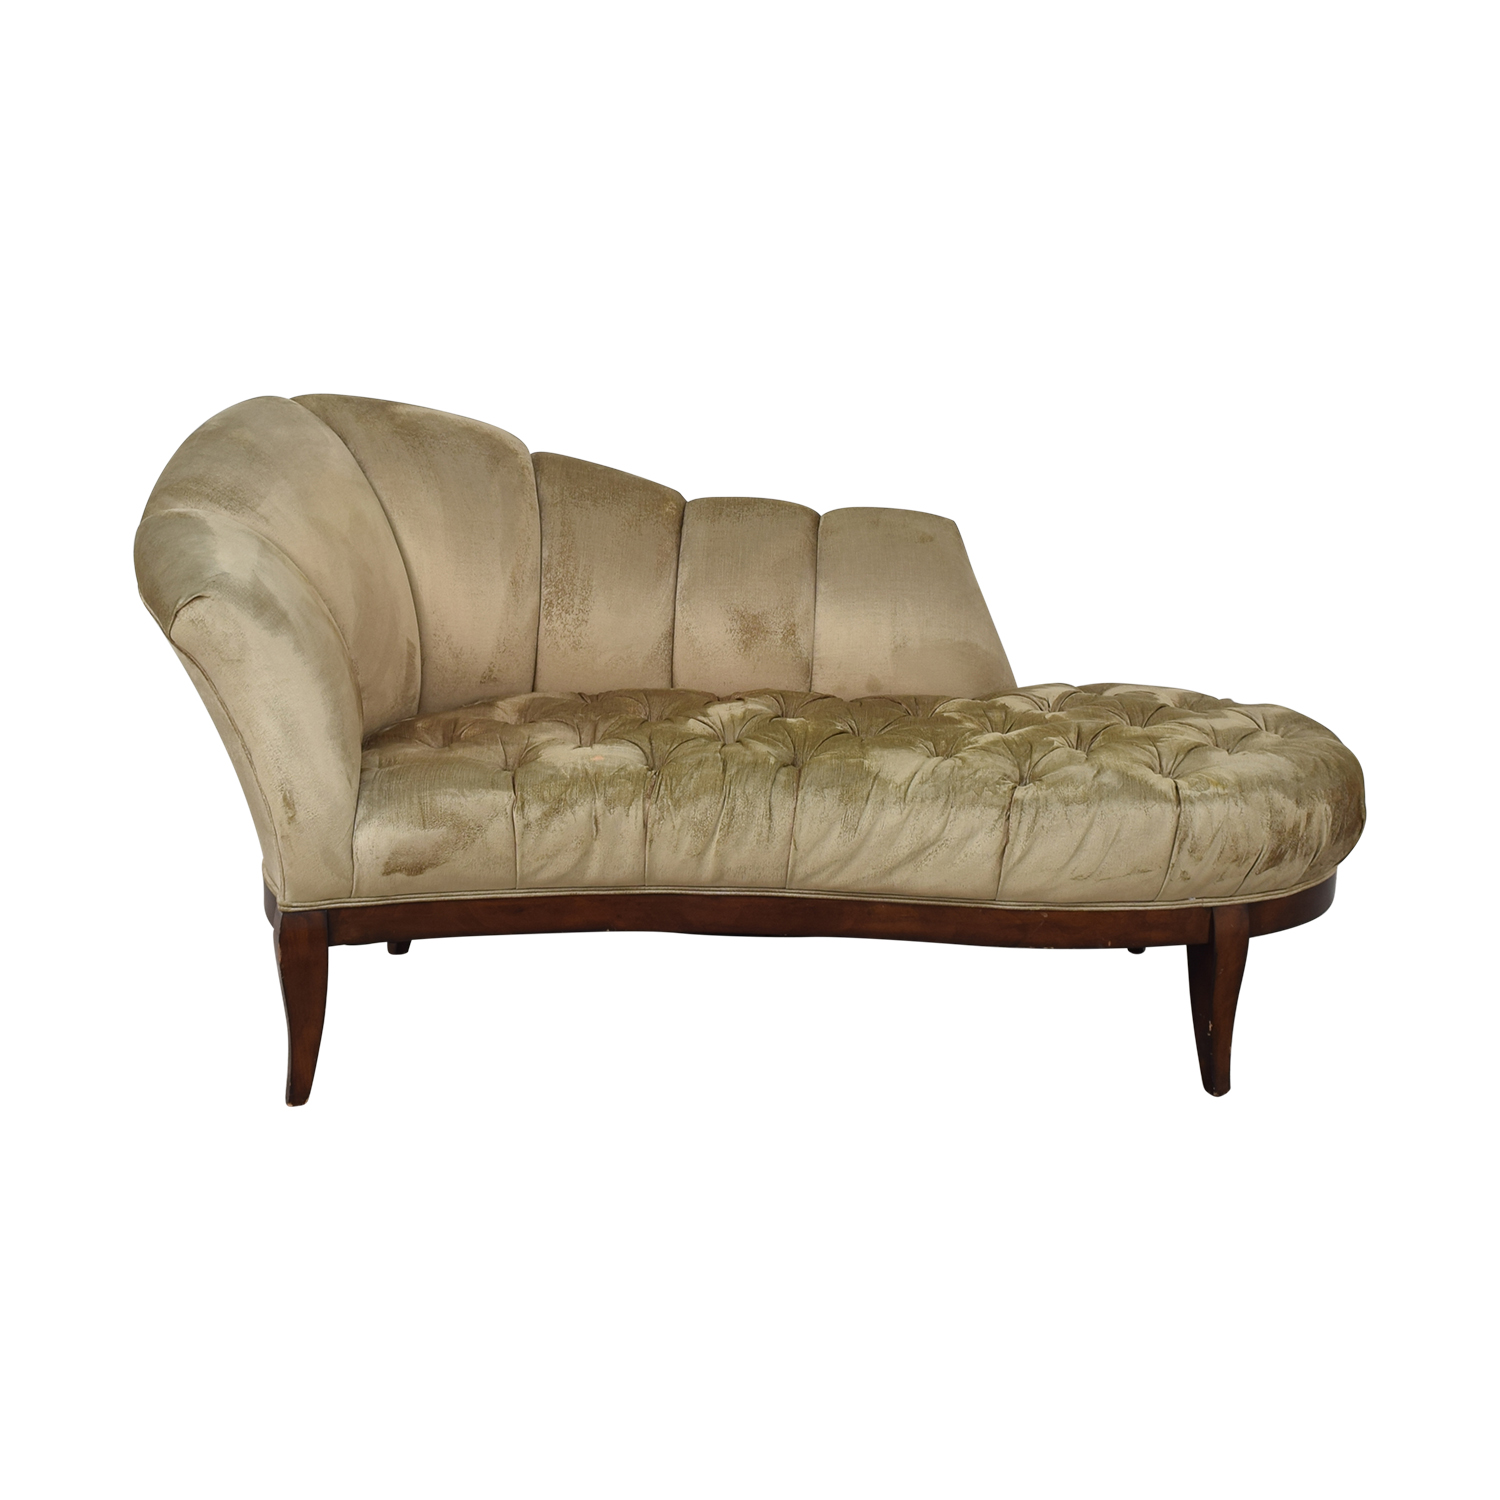 Schnadig Schnadig Pleated Tufted Traditional Chaise for sale